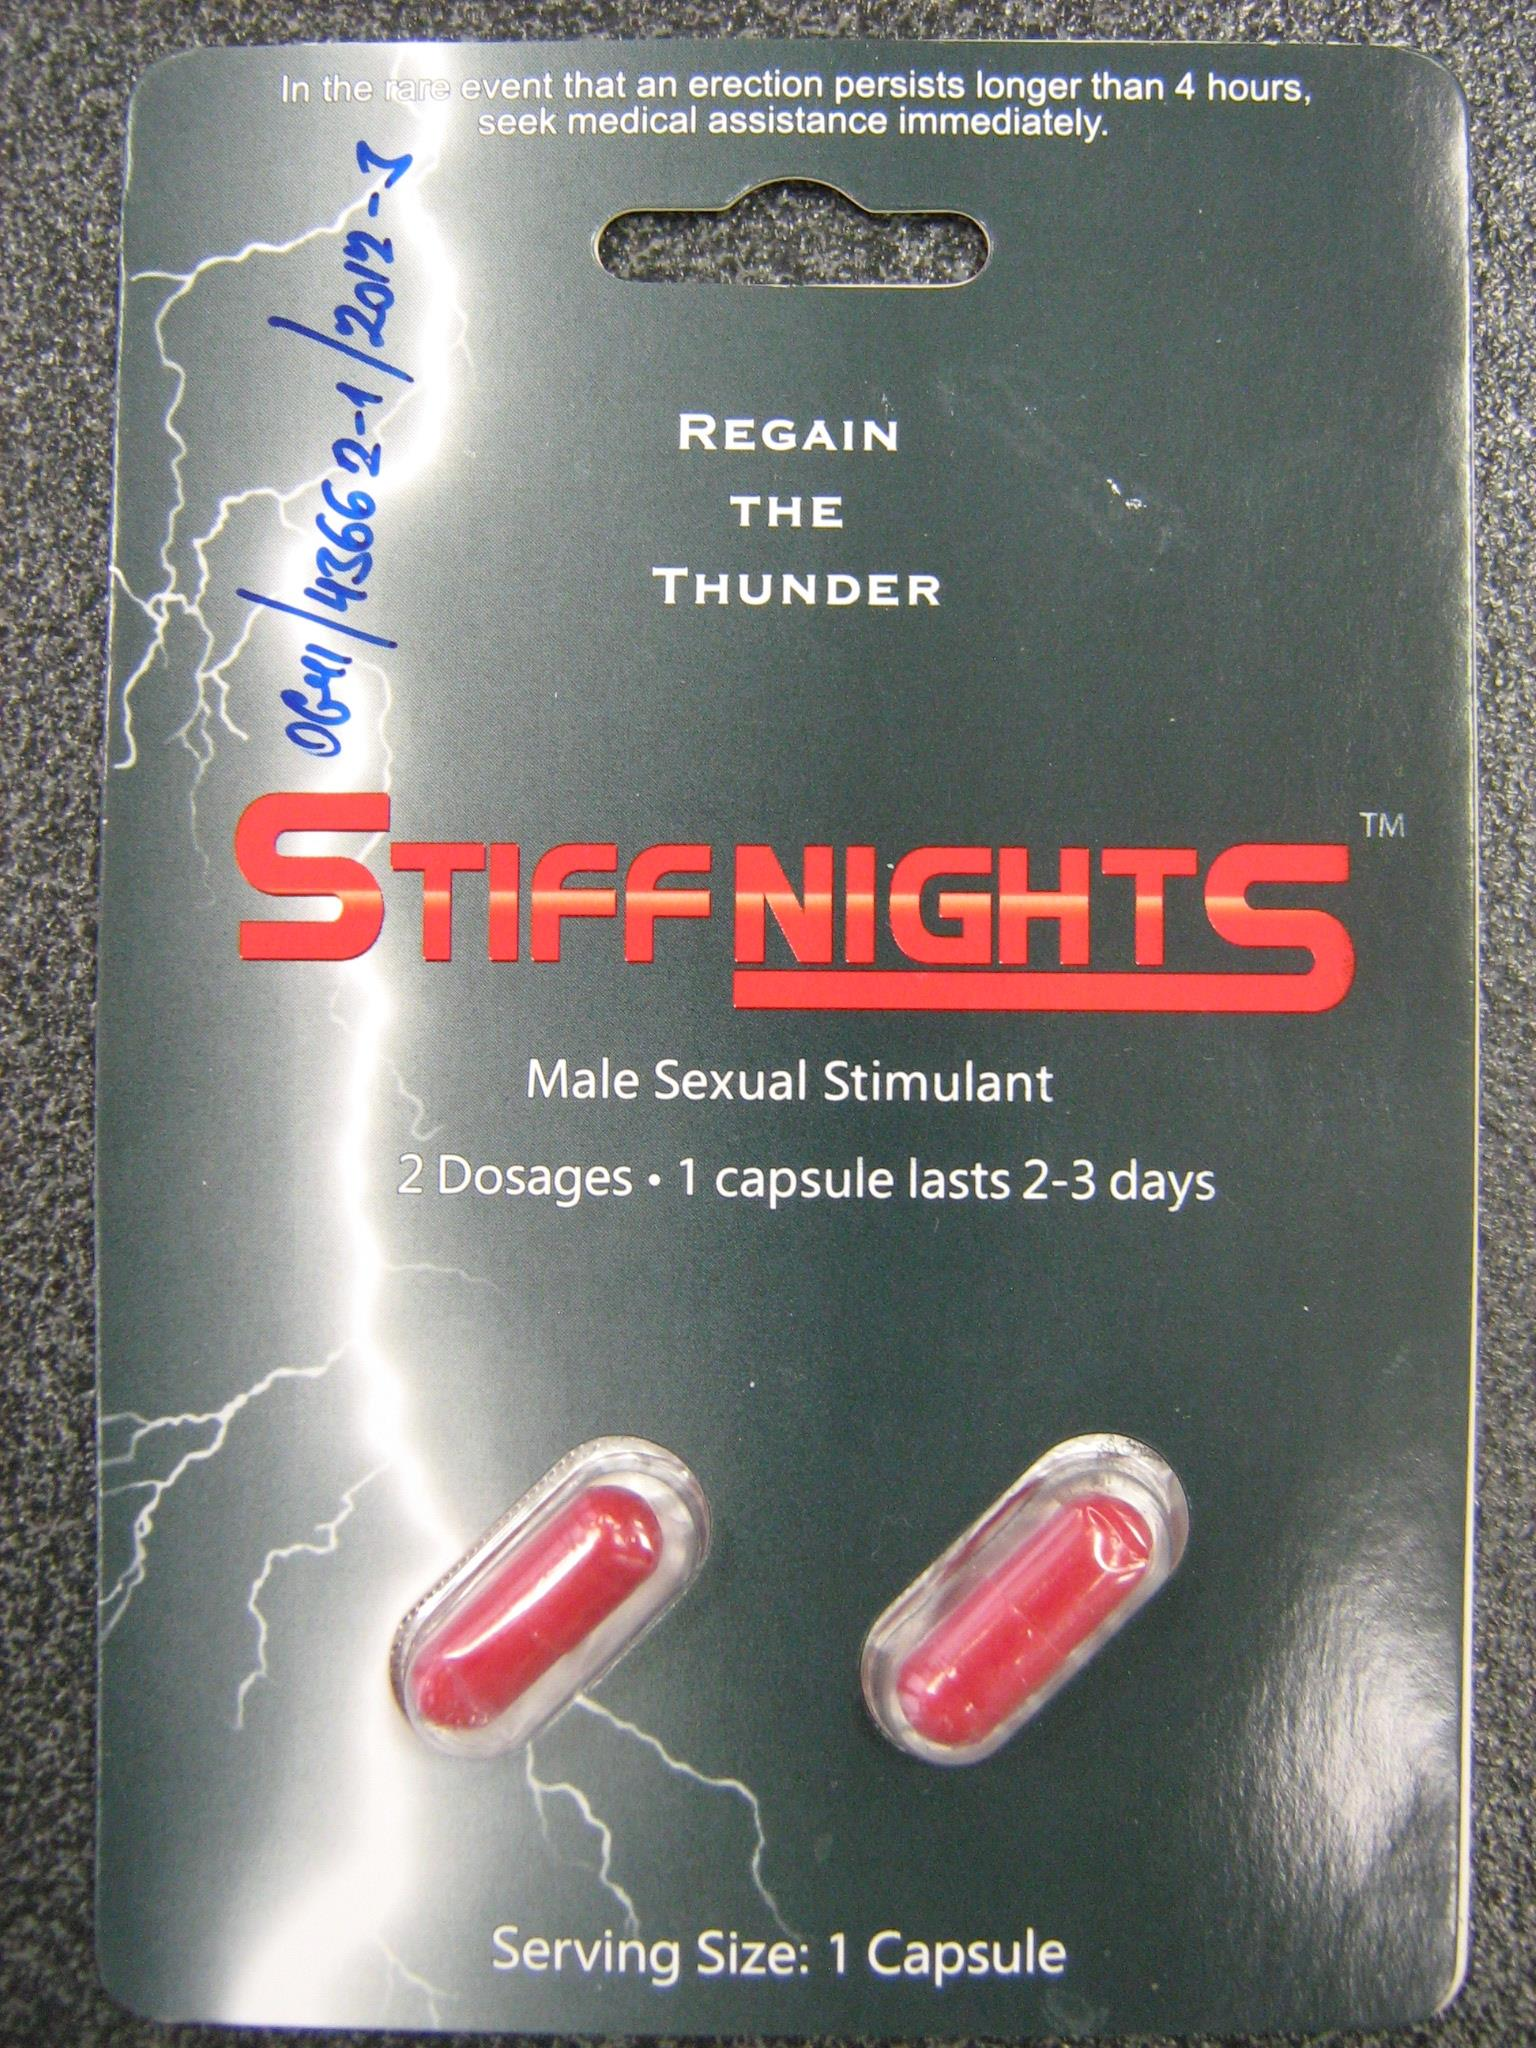 Image of the illigal product: Stiff Nights